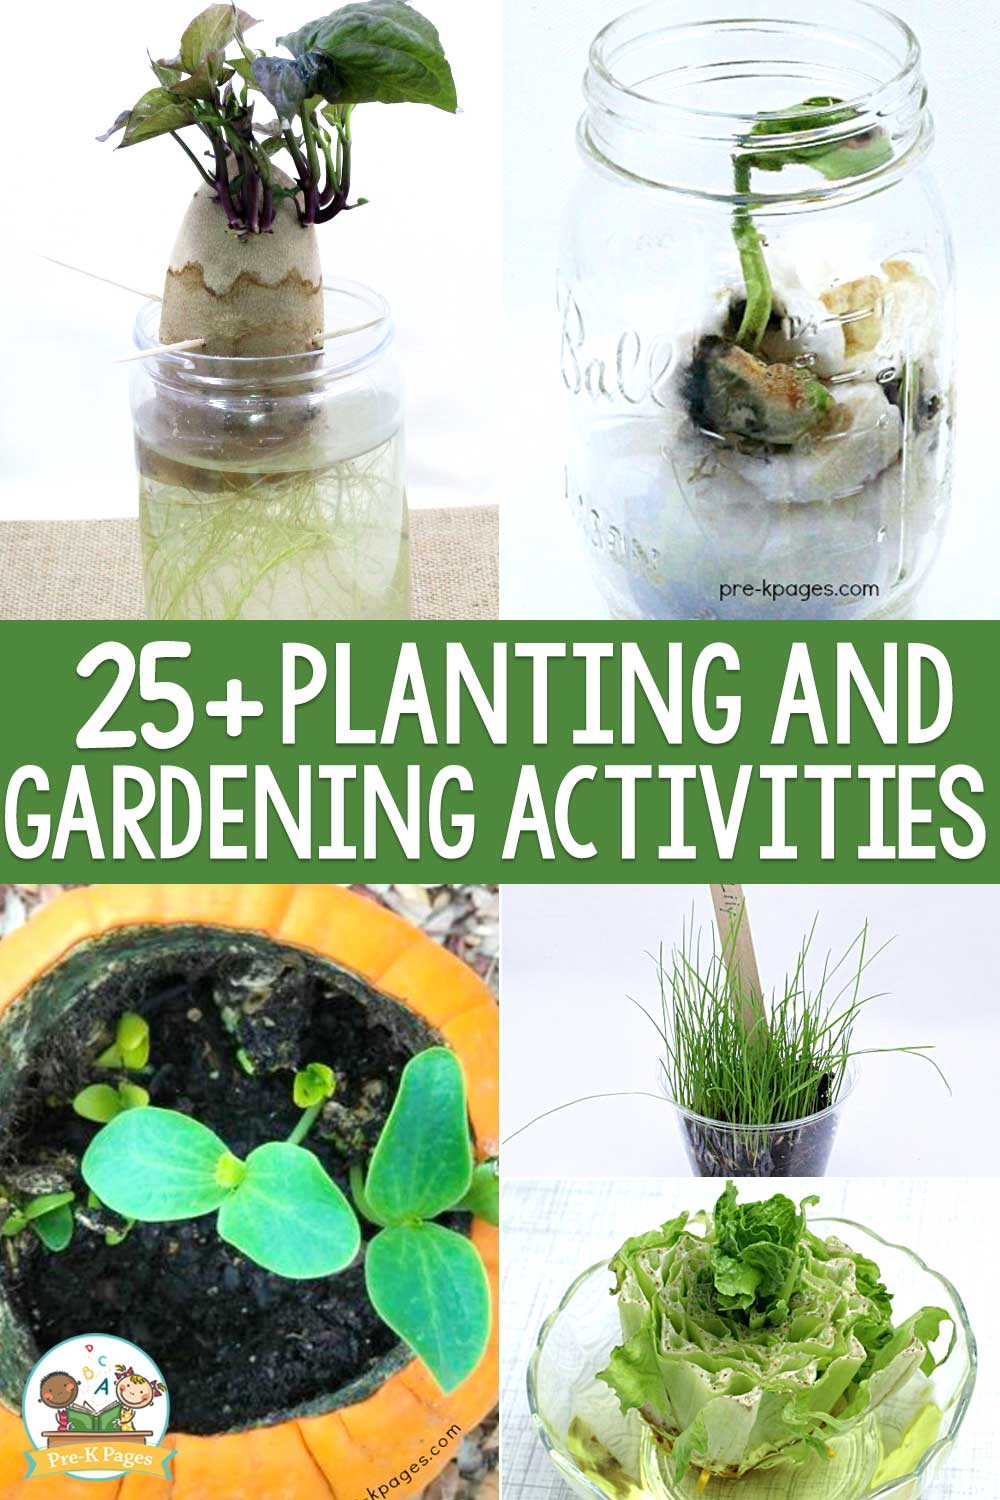 25+ planting and gardening activities